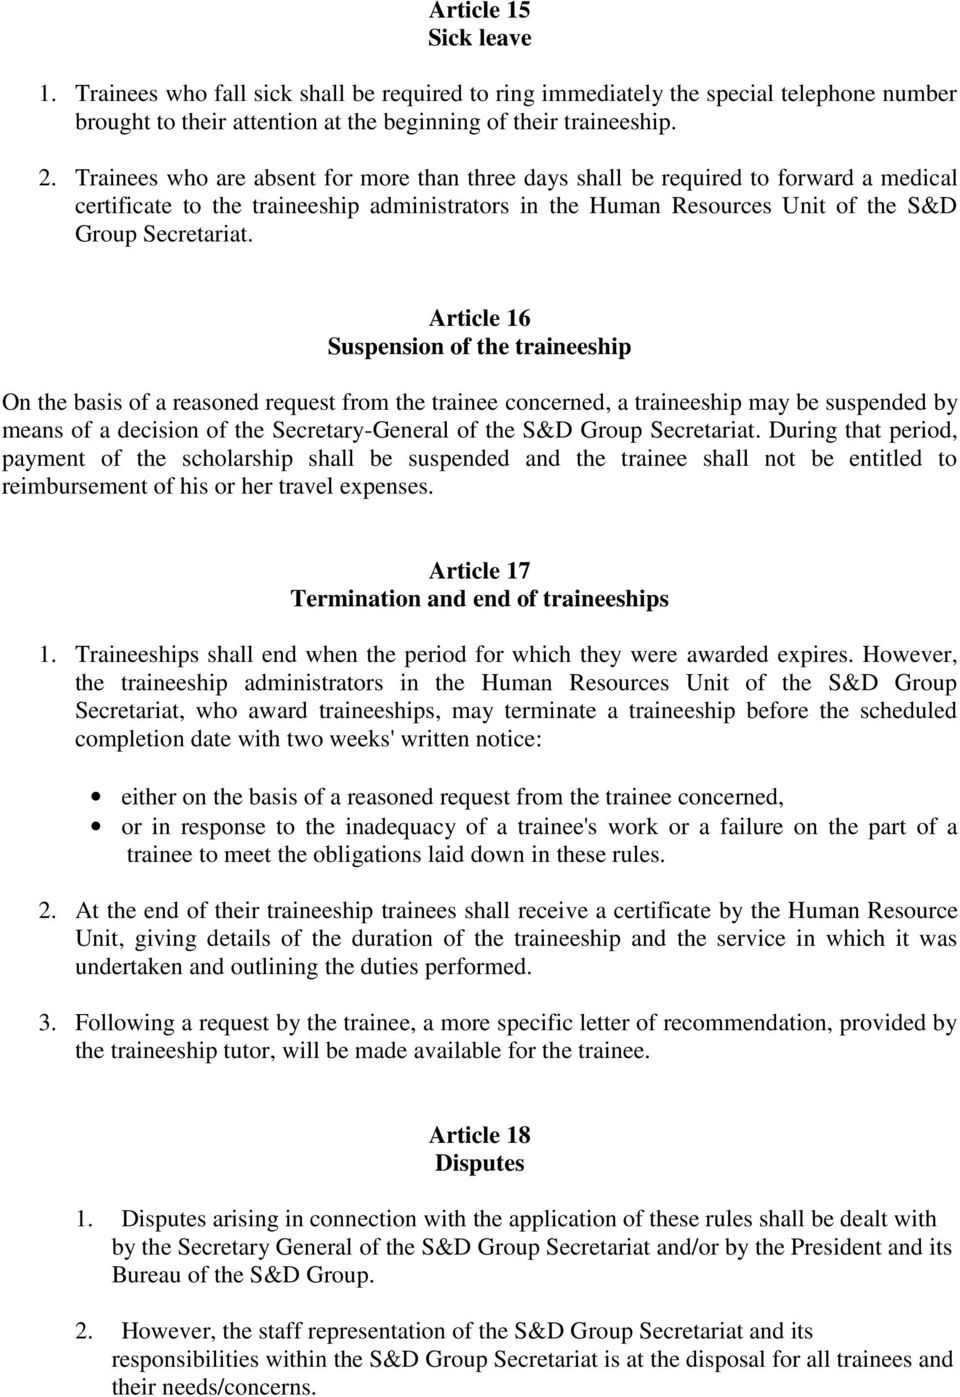 Article 16 Suspension of the traineeship On the basis of a reasoned request from the trainee concerned, a traineeship may be suspended by means of a decision of the Secretary-General of the S&D Group